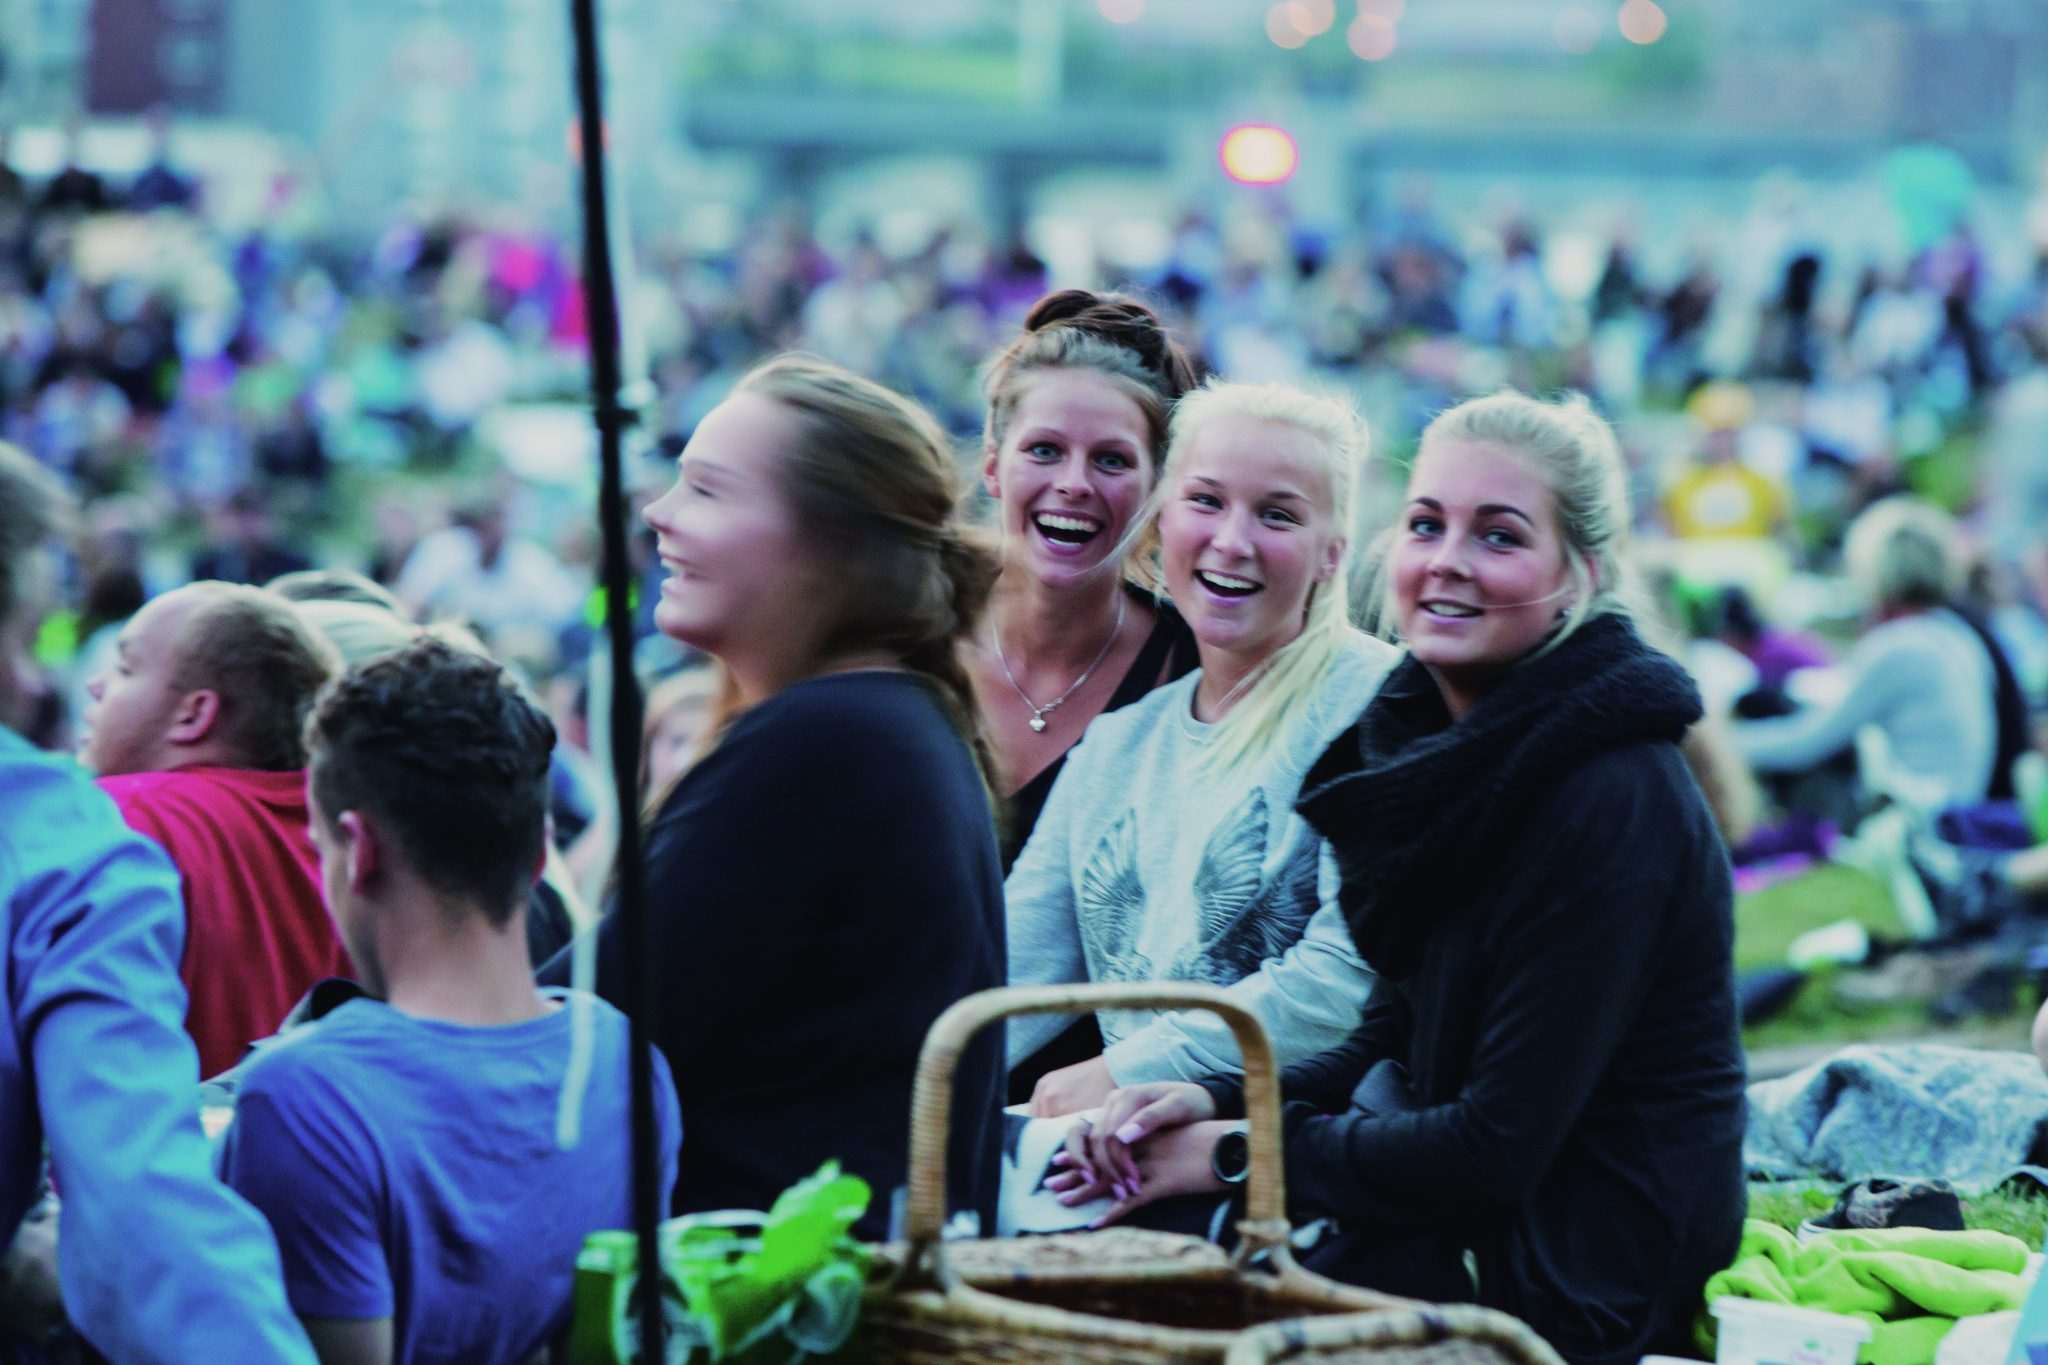 Girls at a concert in Mølleparken